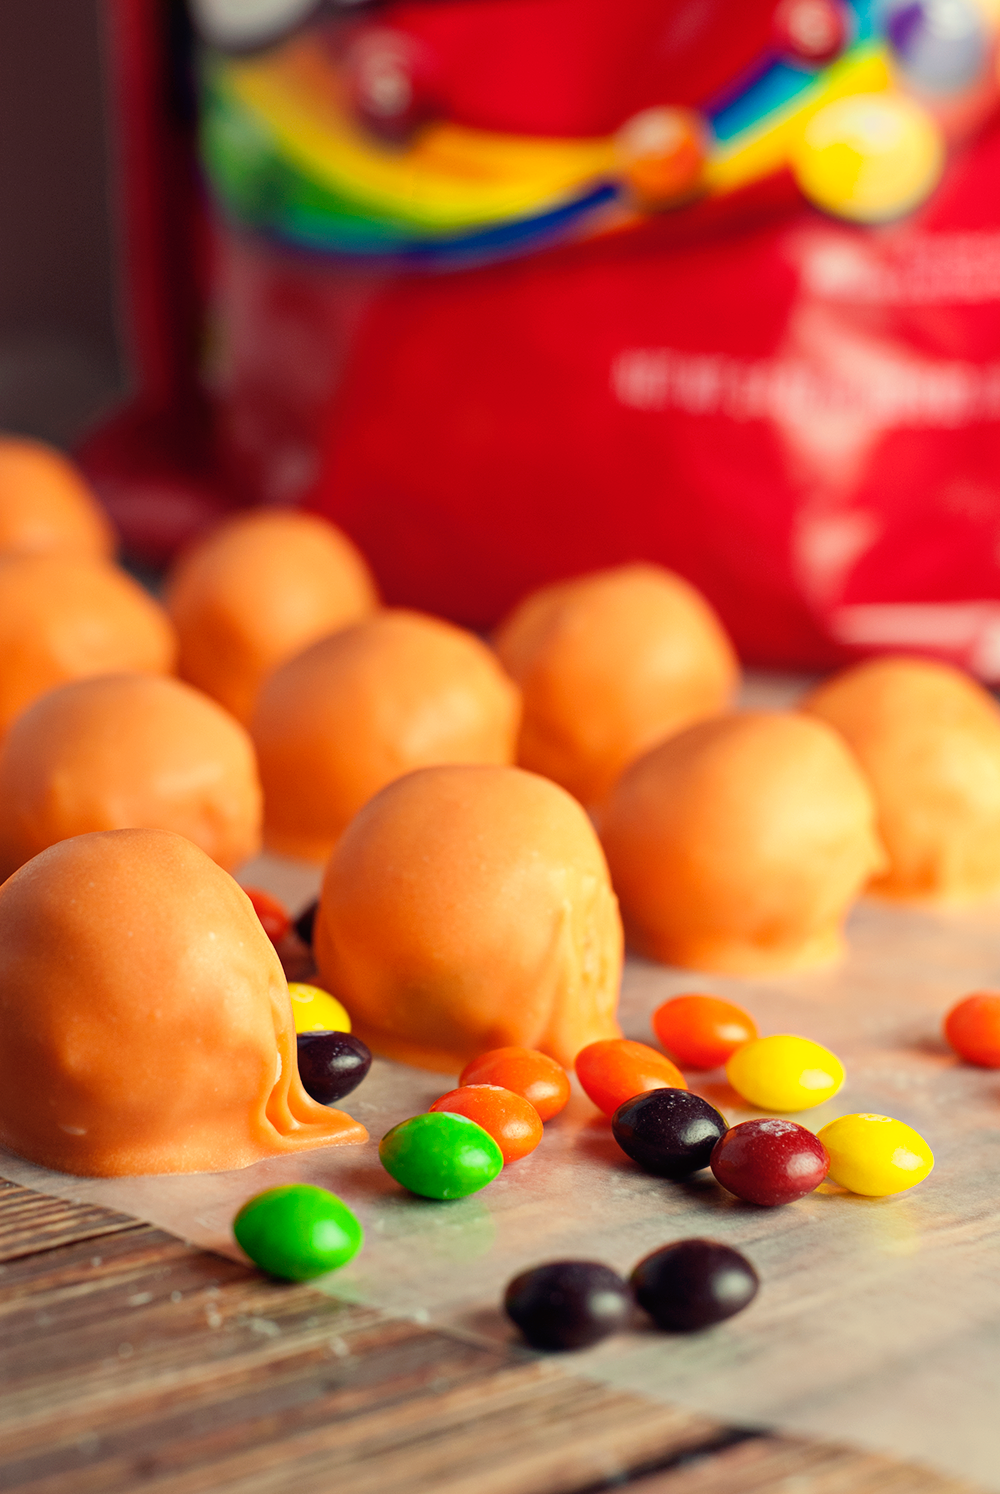 Get ready to party for your next gameday get-together with these amazingly simple basketball cake balls! Delicious, fun, and there's a surprise inside!